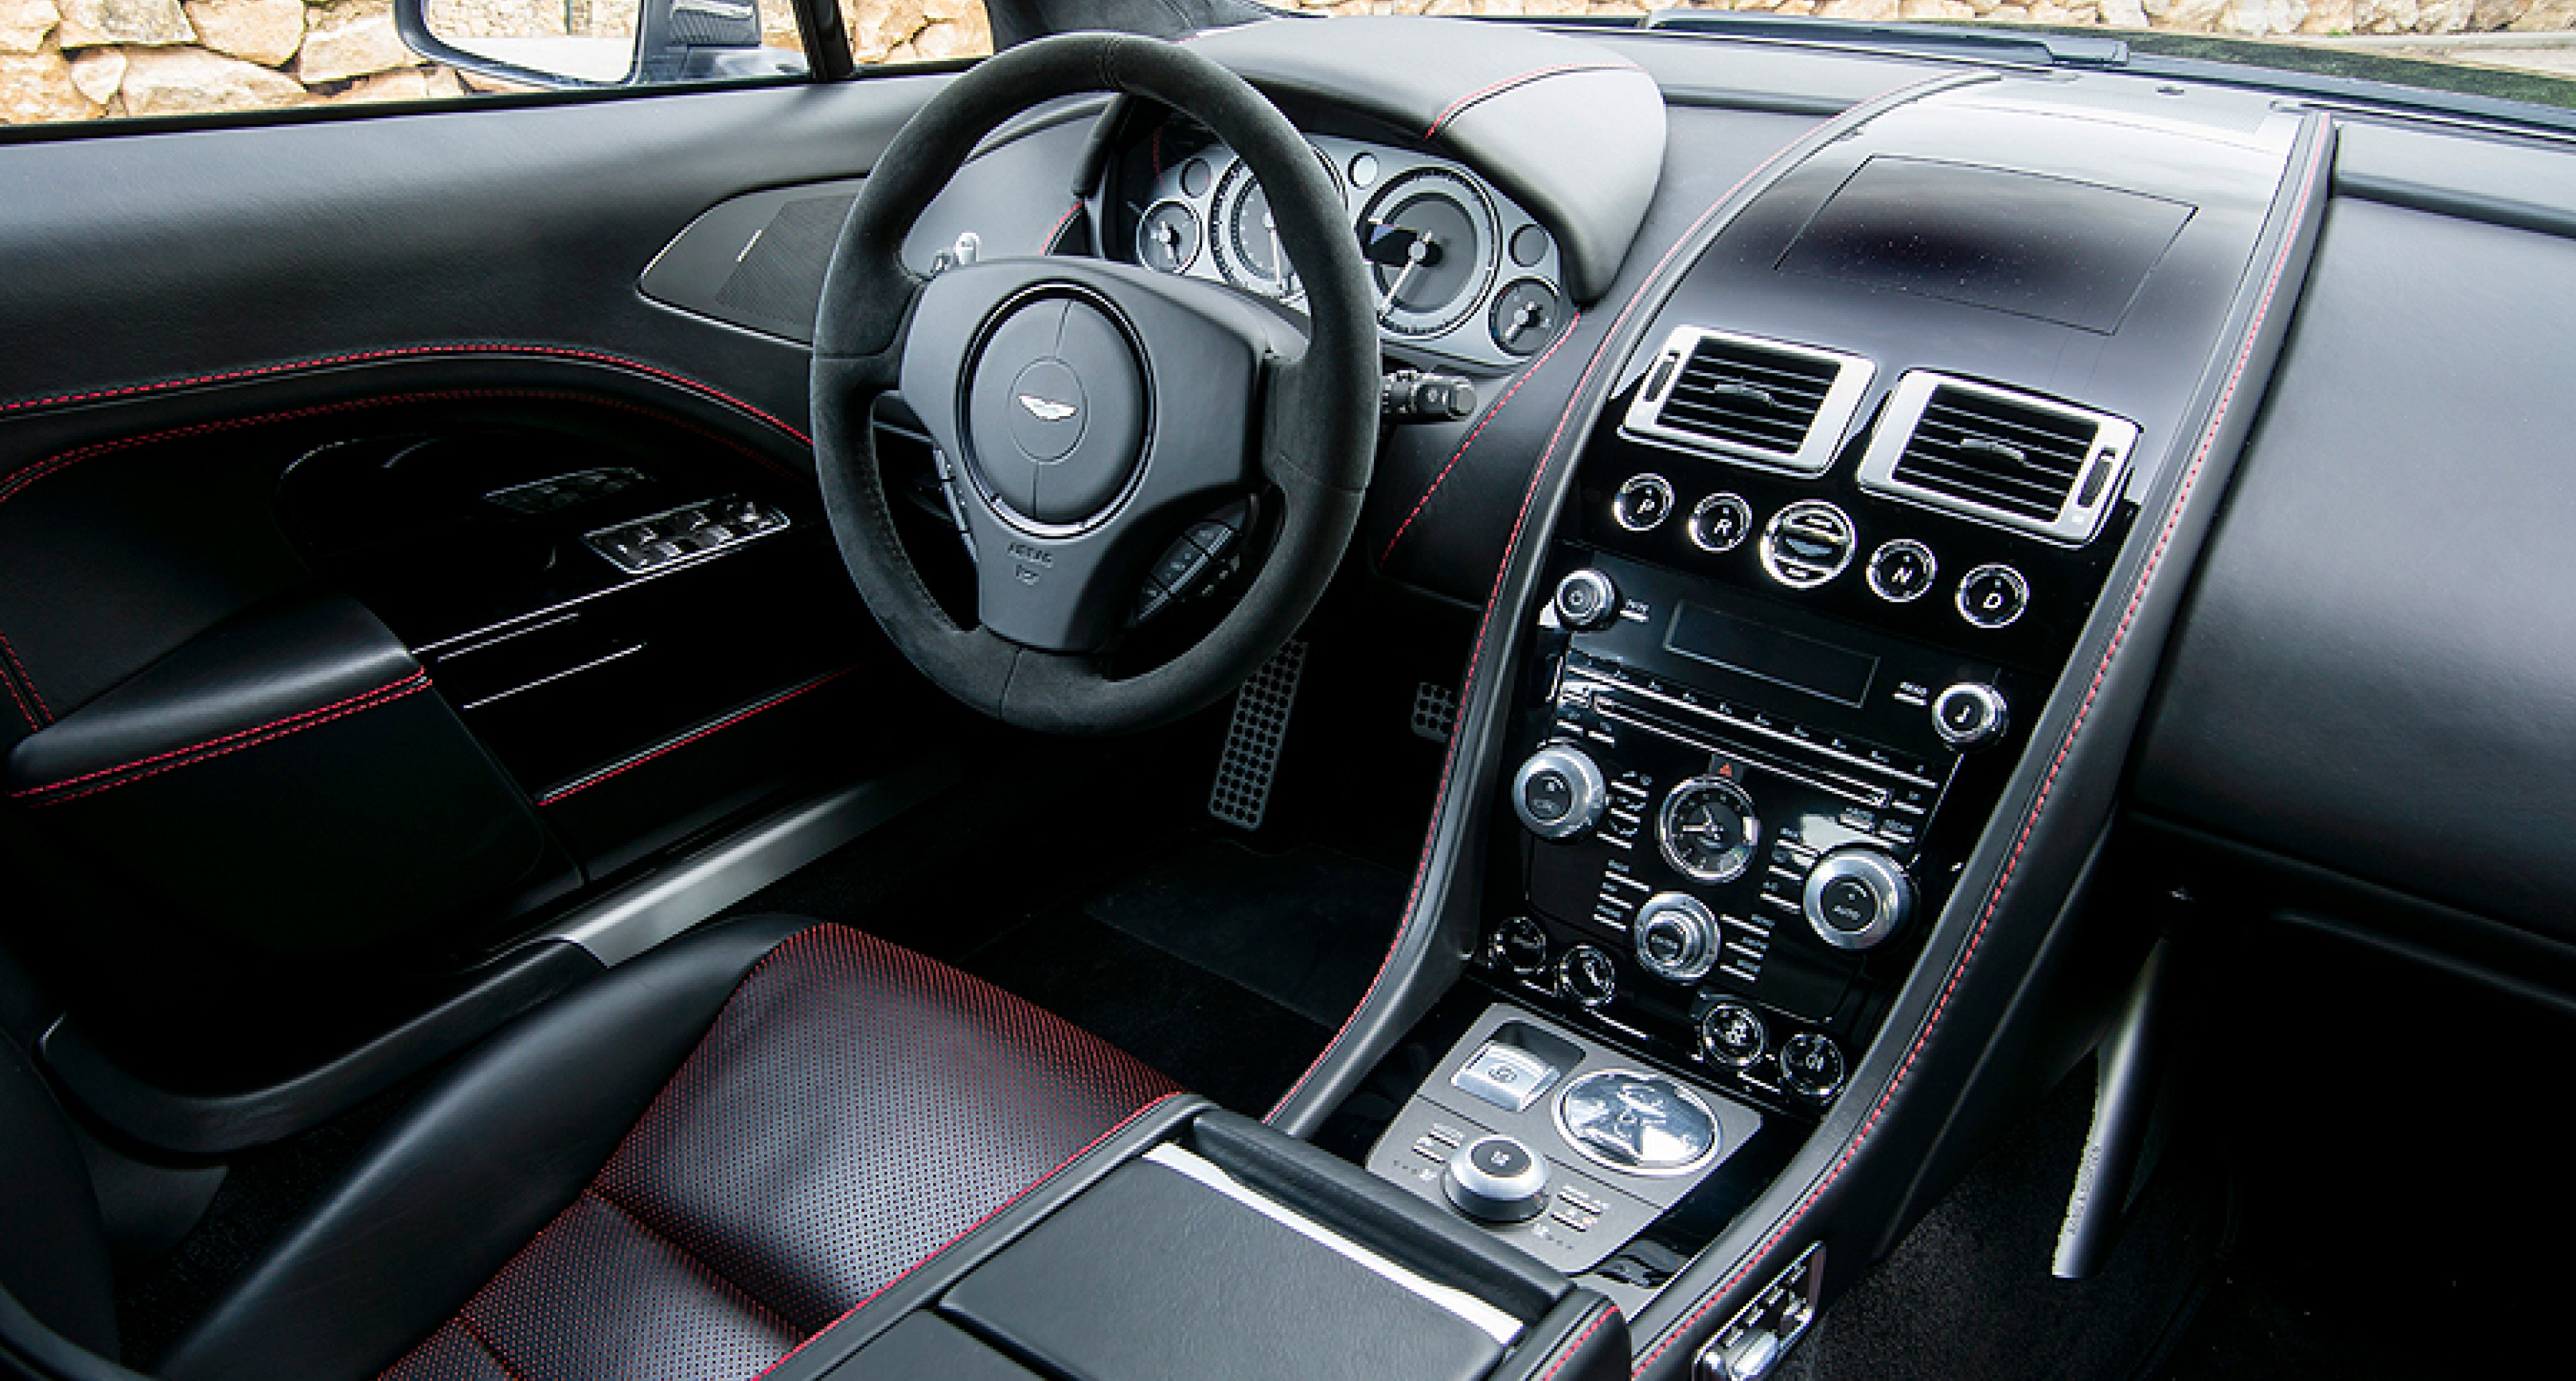 Swift Sophisticated And Stylish Driving The New Aston Martin Rapide S Classic Driver Magazine